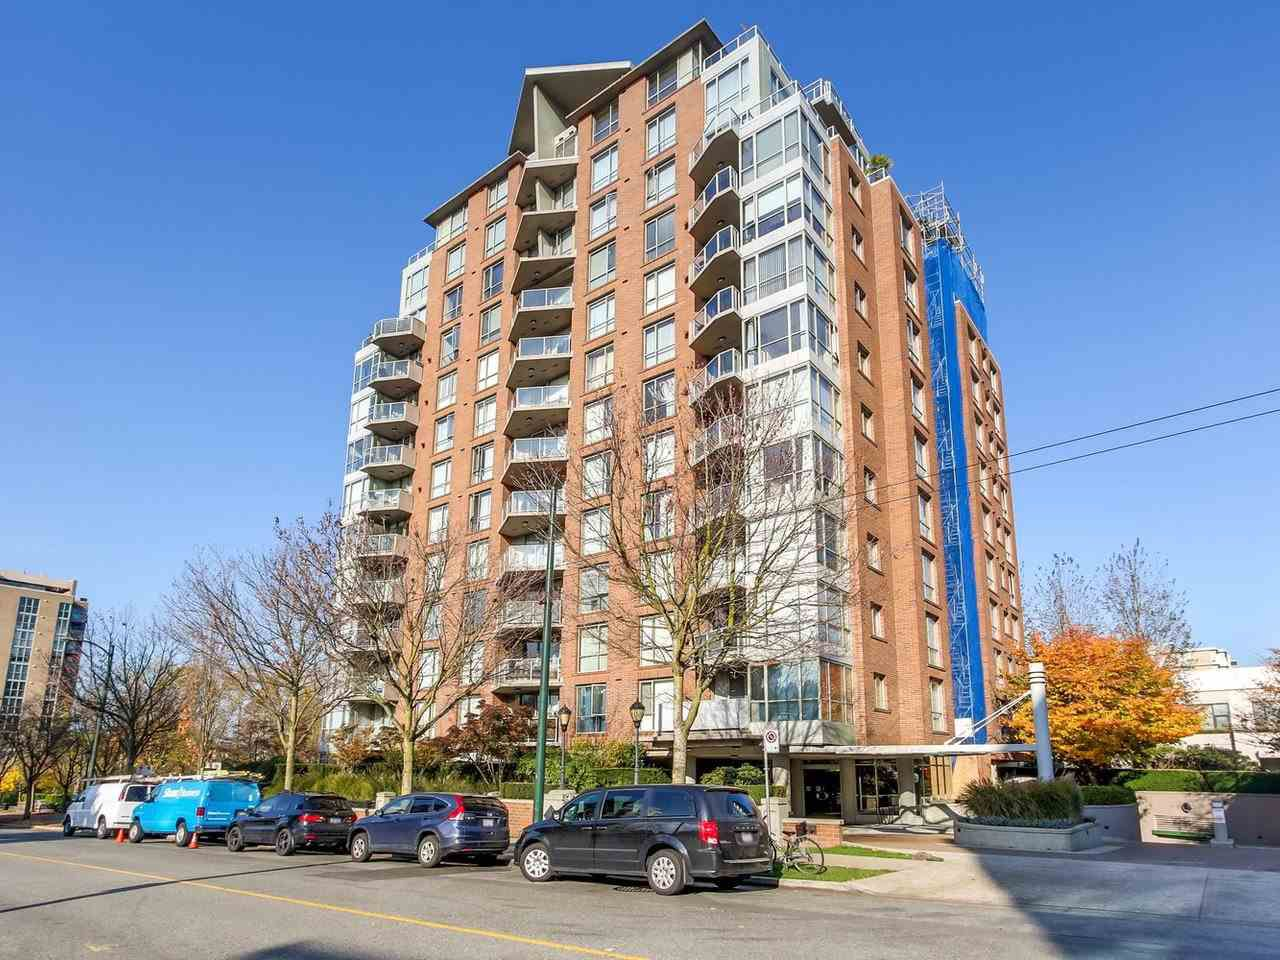 """Main Photo: 102 1575 W 10TH Avenue in Vancouver: Fairview VW Condo for sale in """"THE TRITON"""" (Vancouver West)  : MLS®# R2218519"""